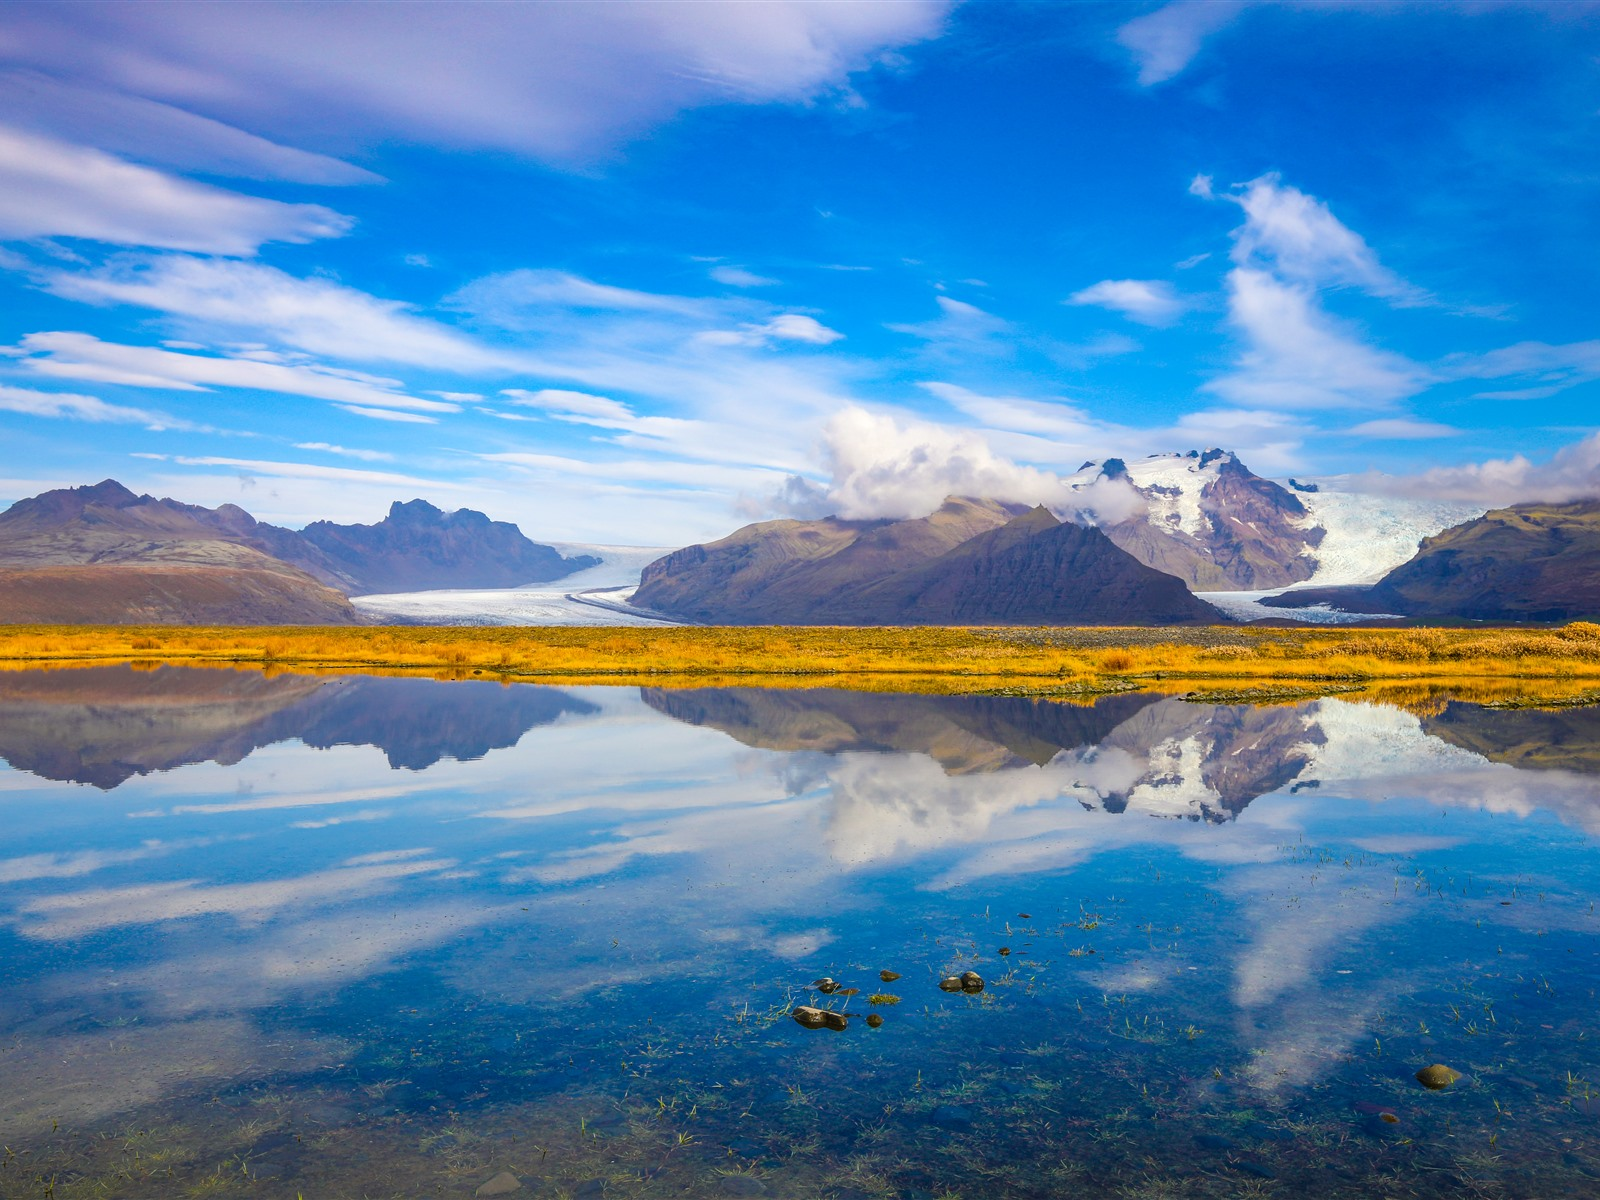 Wallpaper Iceland Sea Mountains Blue Sky Water Reflection 51x Uhd 5k Picture Image